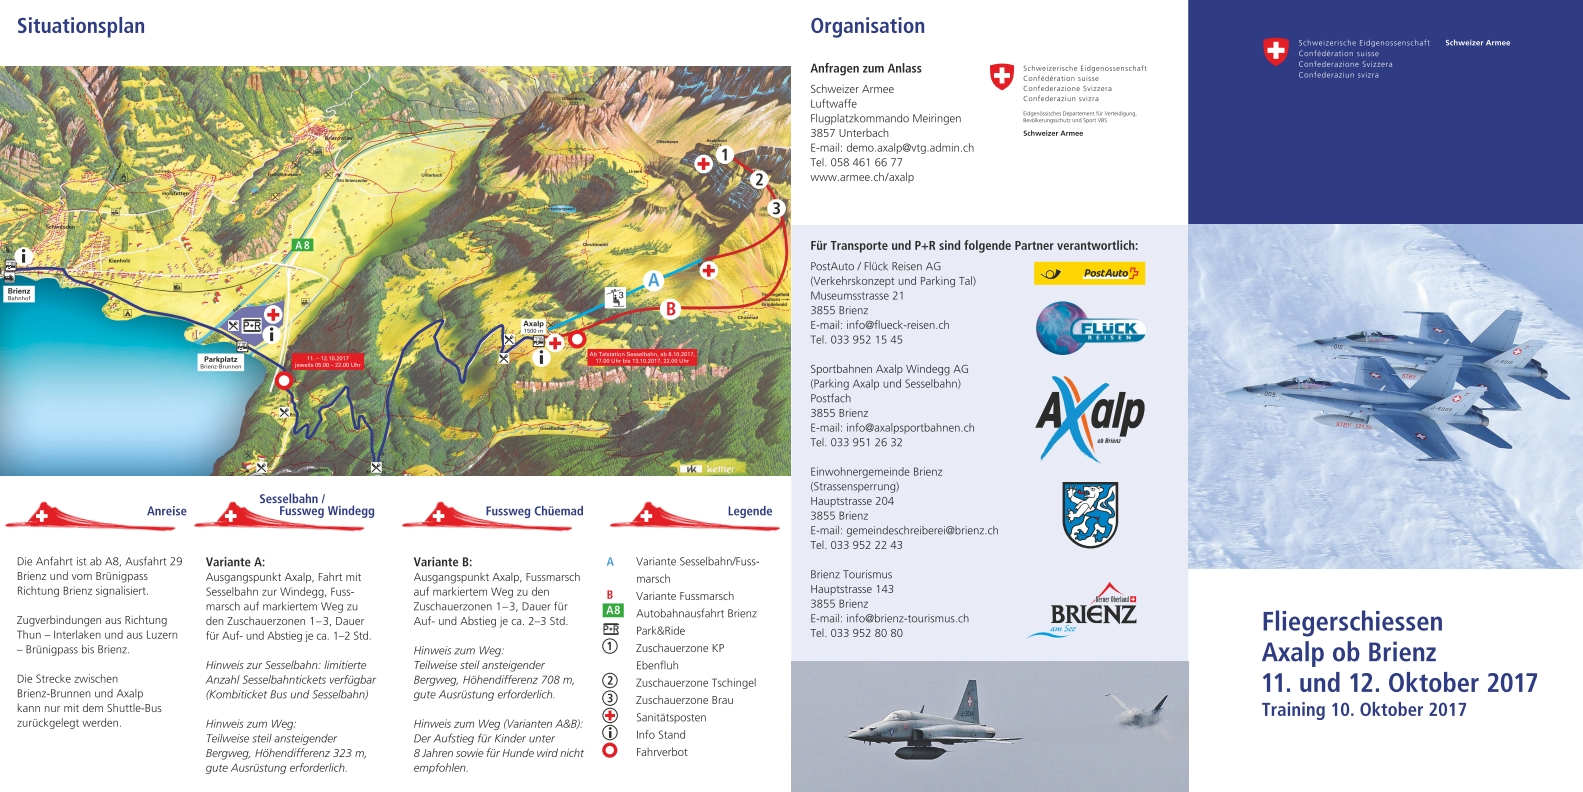 The Application Form For The Accreditation Of Media Representatives Is  Available On The Website For The Axalp Air Force Live Fire Event Above  Brienz; ...